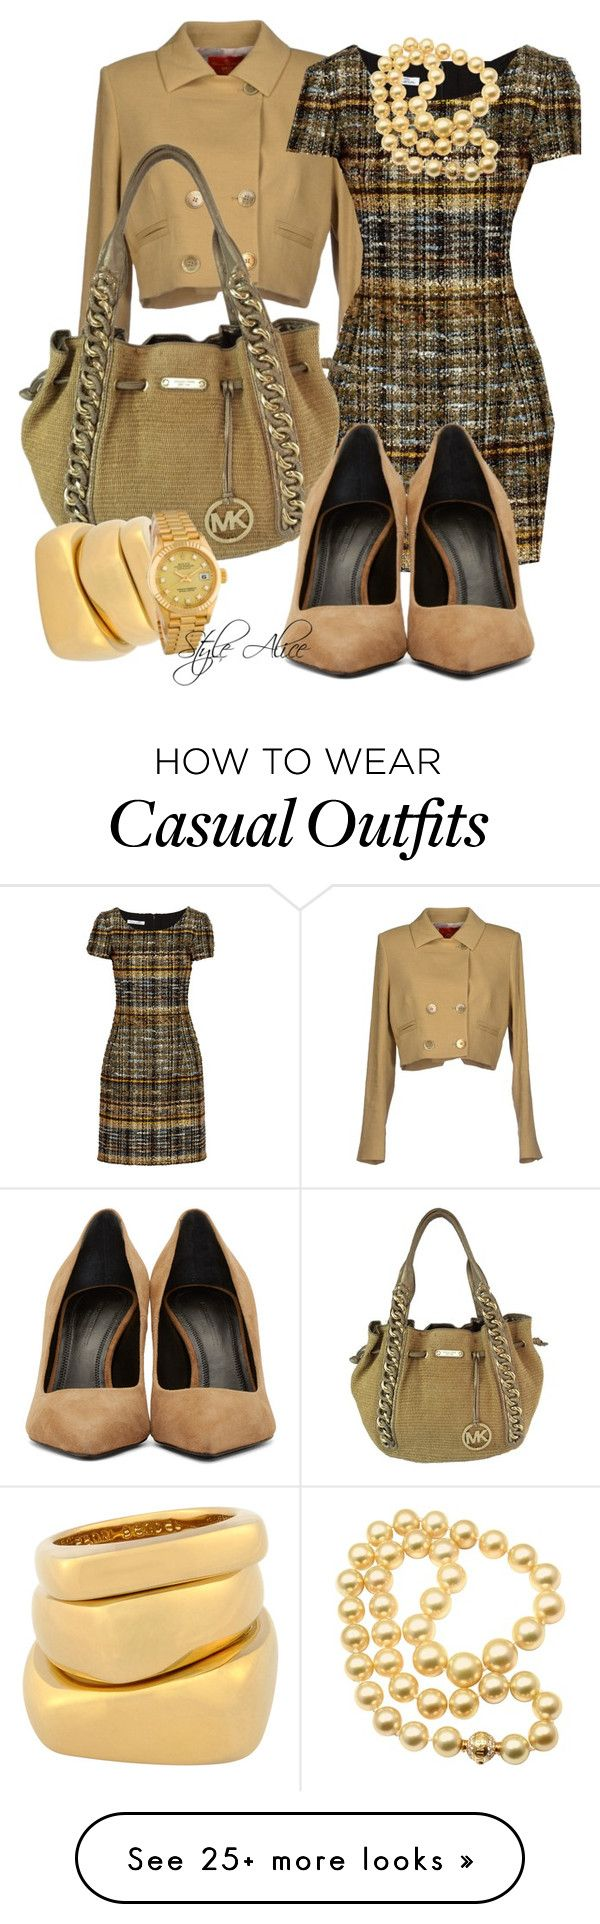 """Casual"" by alice-fortuna on Polyvore featuring Vivienne Westwood Red Label, Oscar de la Renta, Mikimoto, MICHAEL Michael Kors, Henri Bendel, Rolex and Alexander Wang"